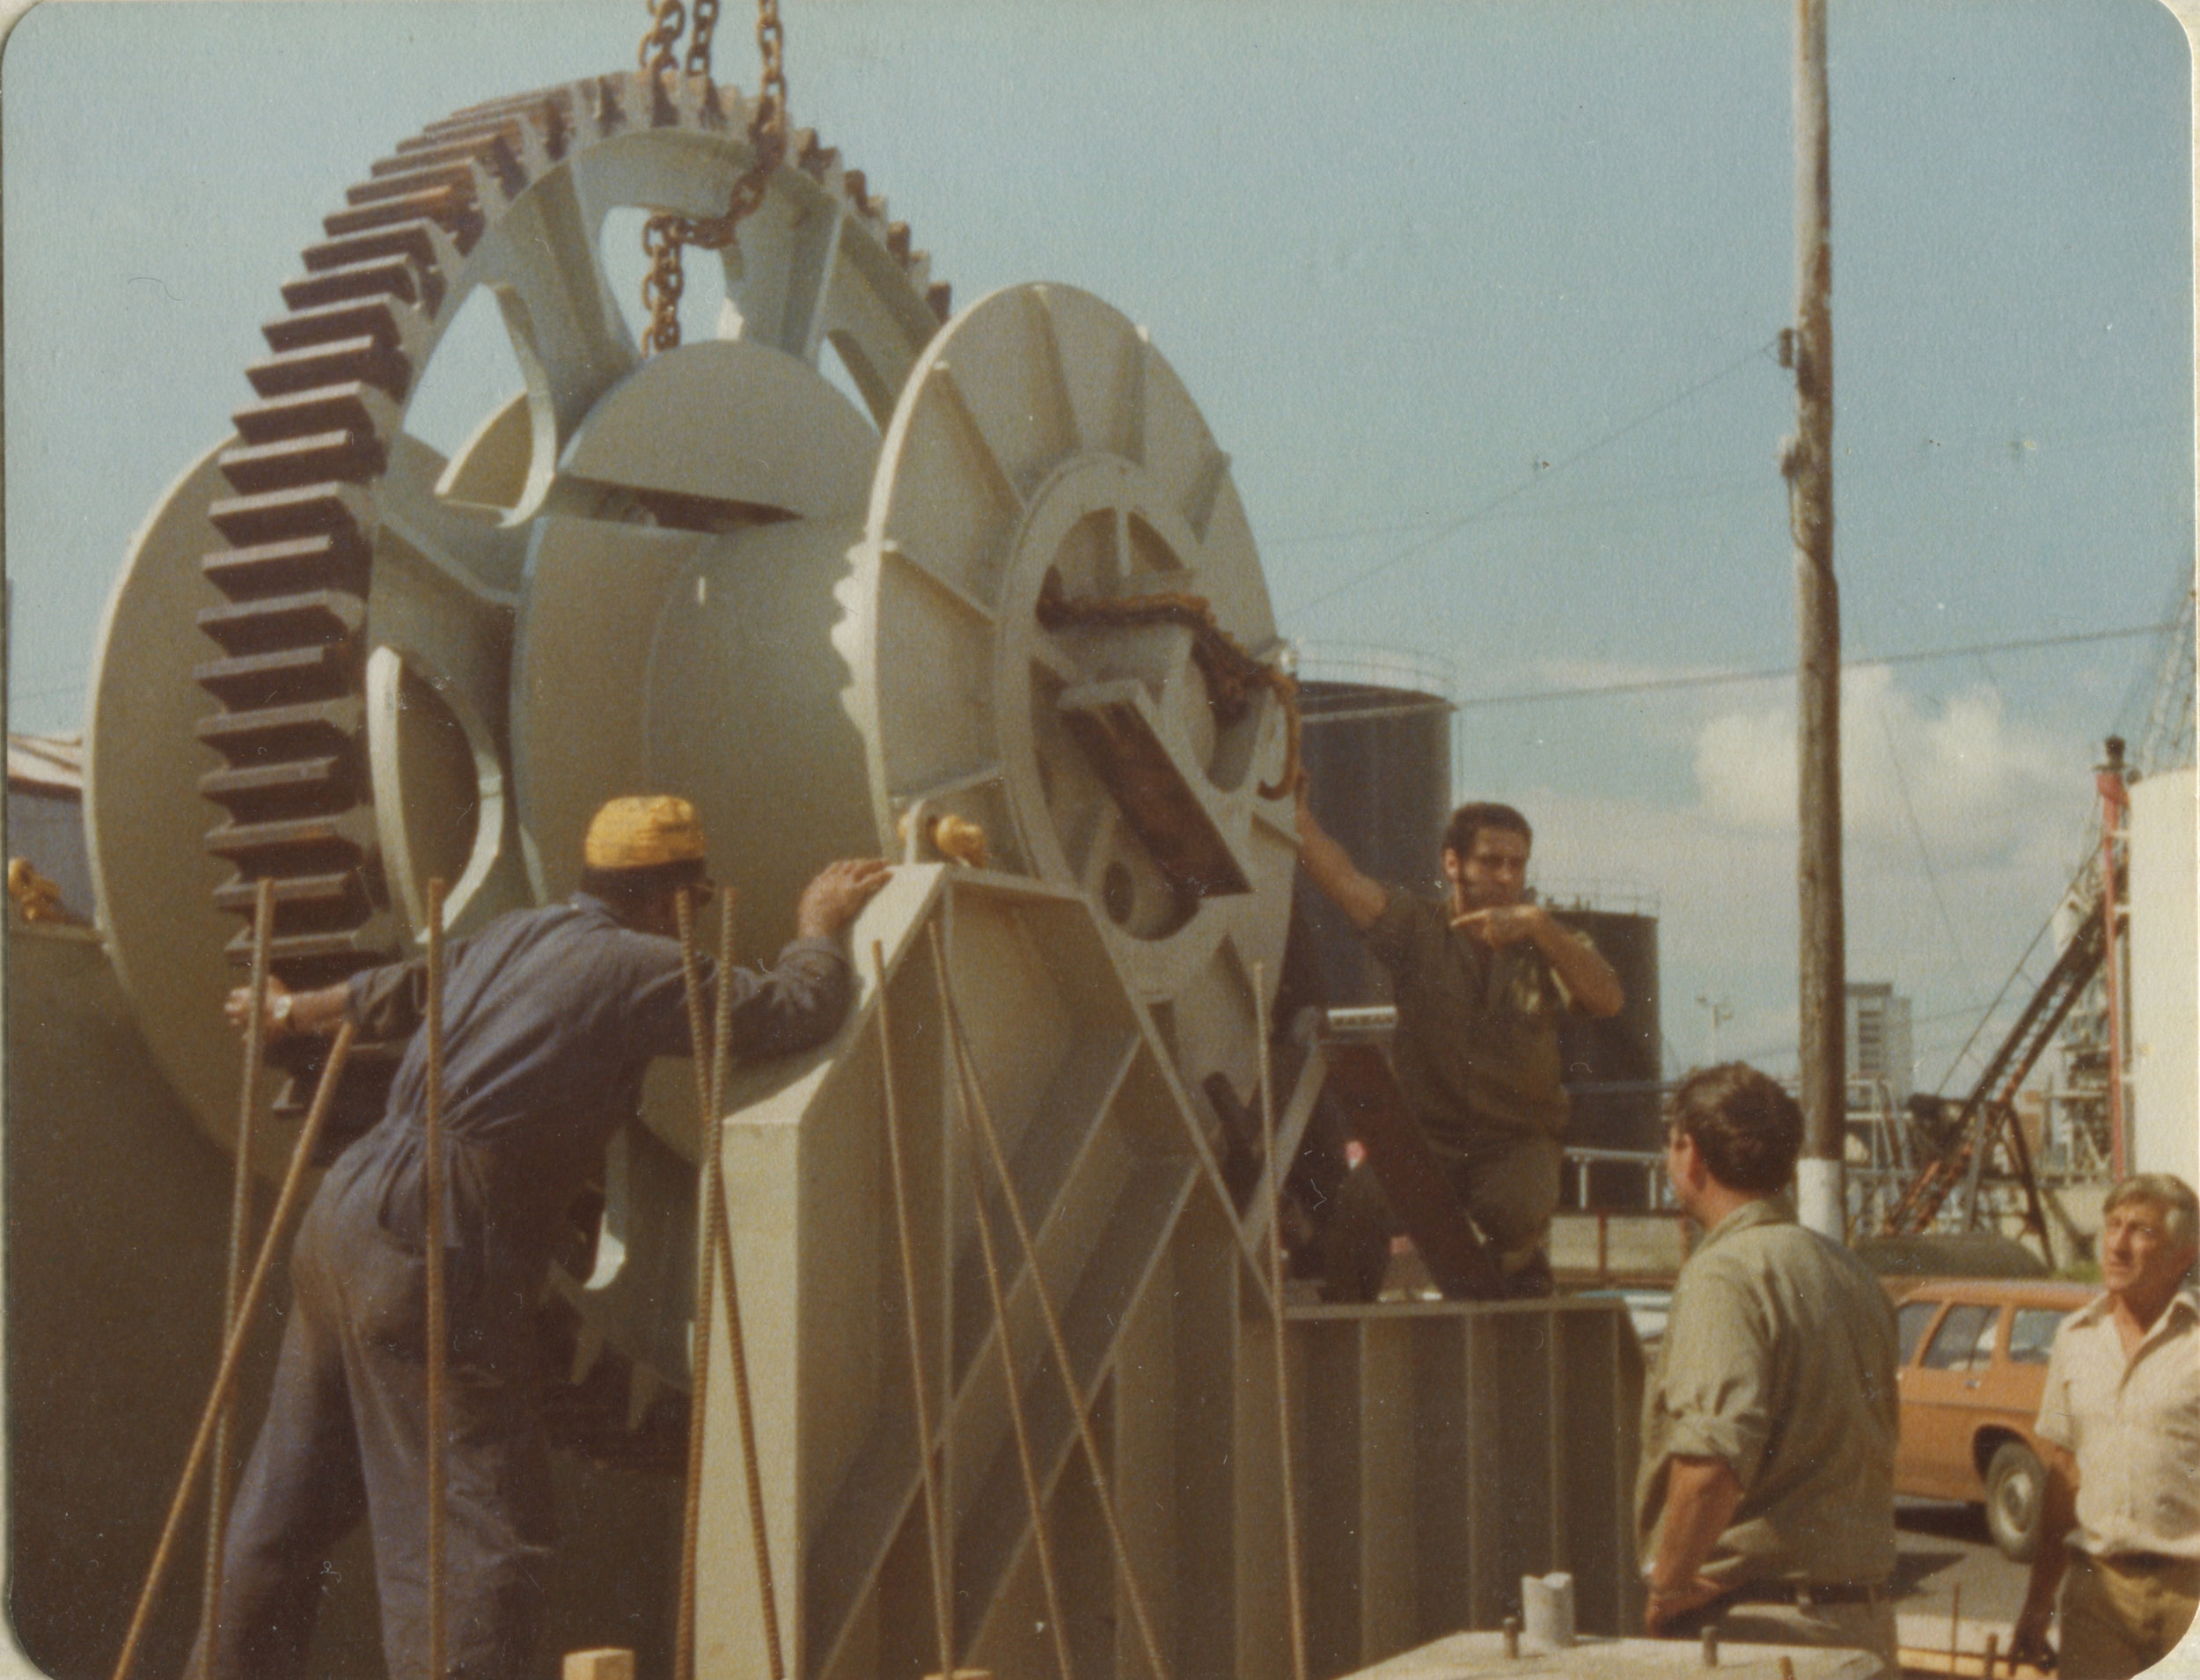 Roko, Nev and Pat (Circa 1970s) with a large Shipway wench. Image courtesy of Titan Marine Engineering.